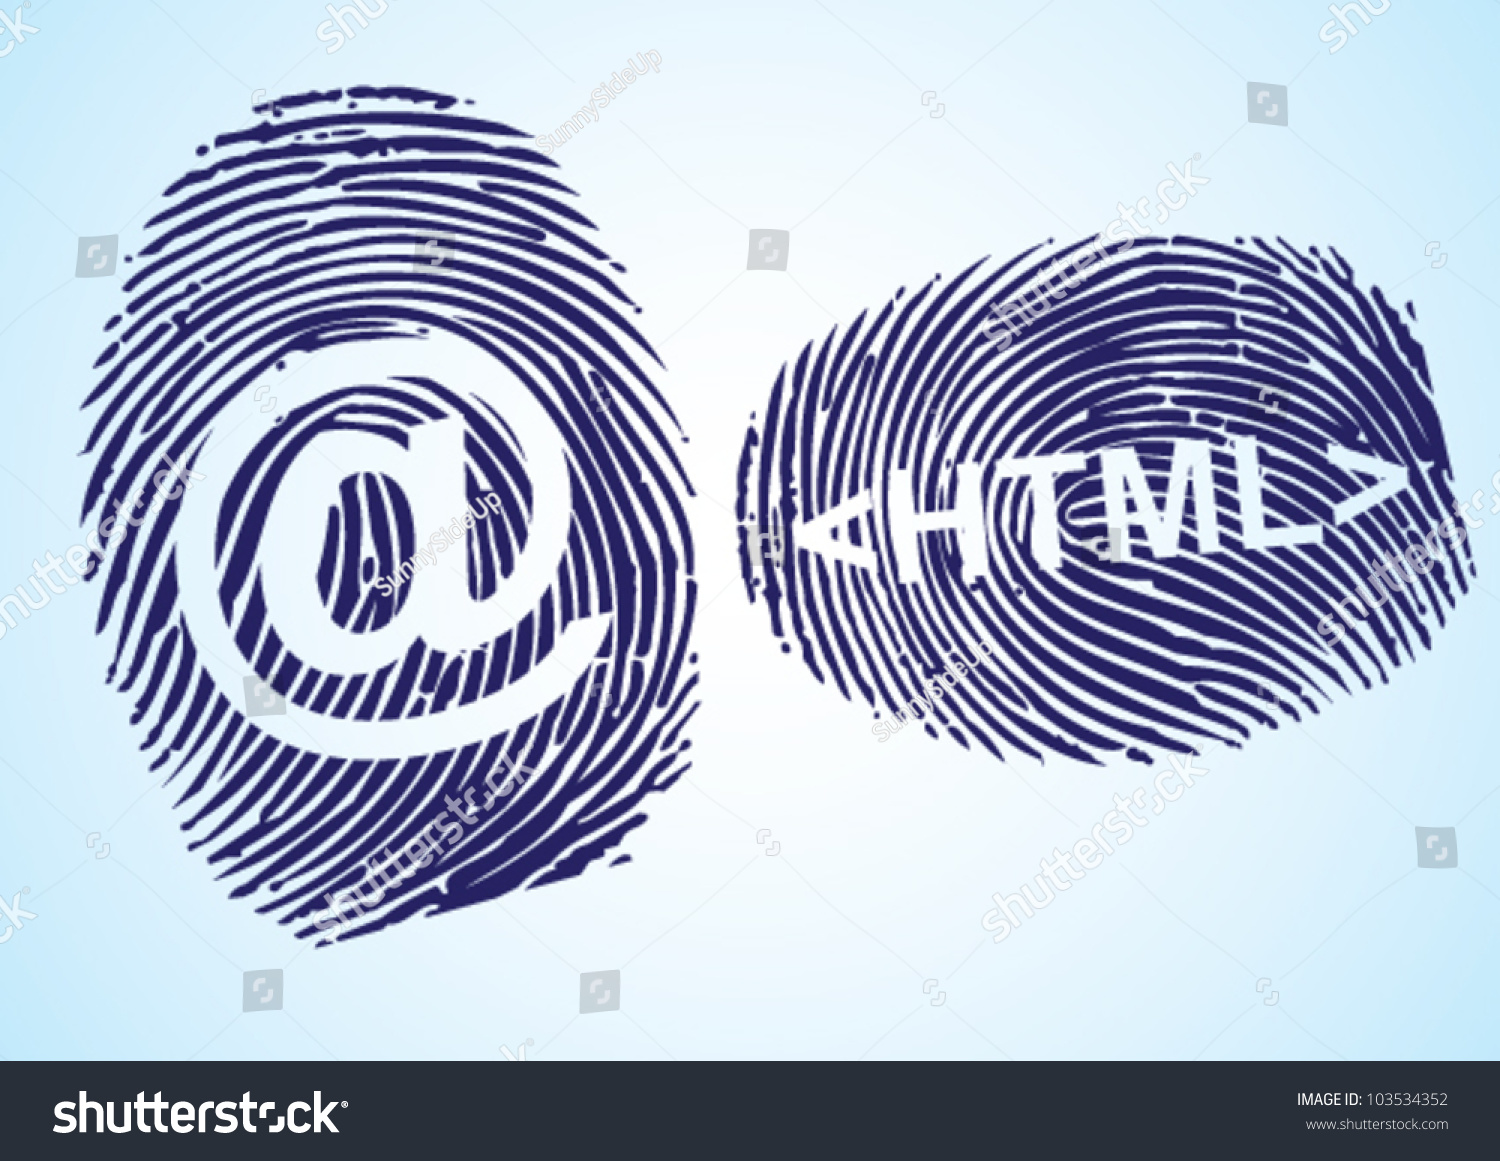 Html E Mail Symbol Thumbprint Stock Vector Royalty Free 103534352